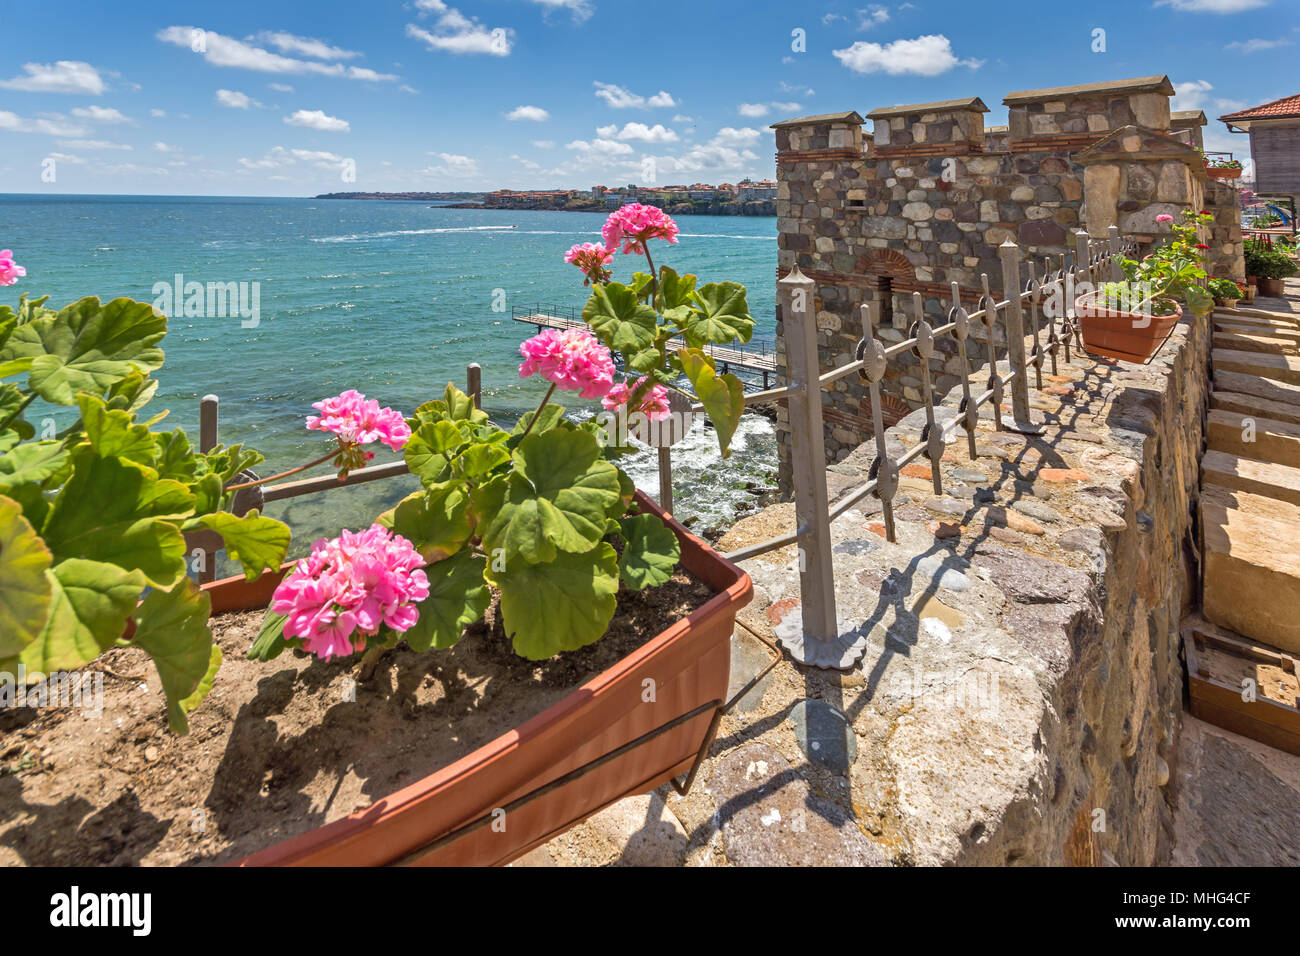 Ancient fortifications in town of Sozopol, Burgas Region, Bulgaria - Stock Image